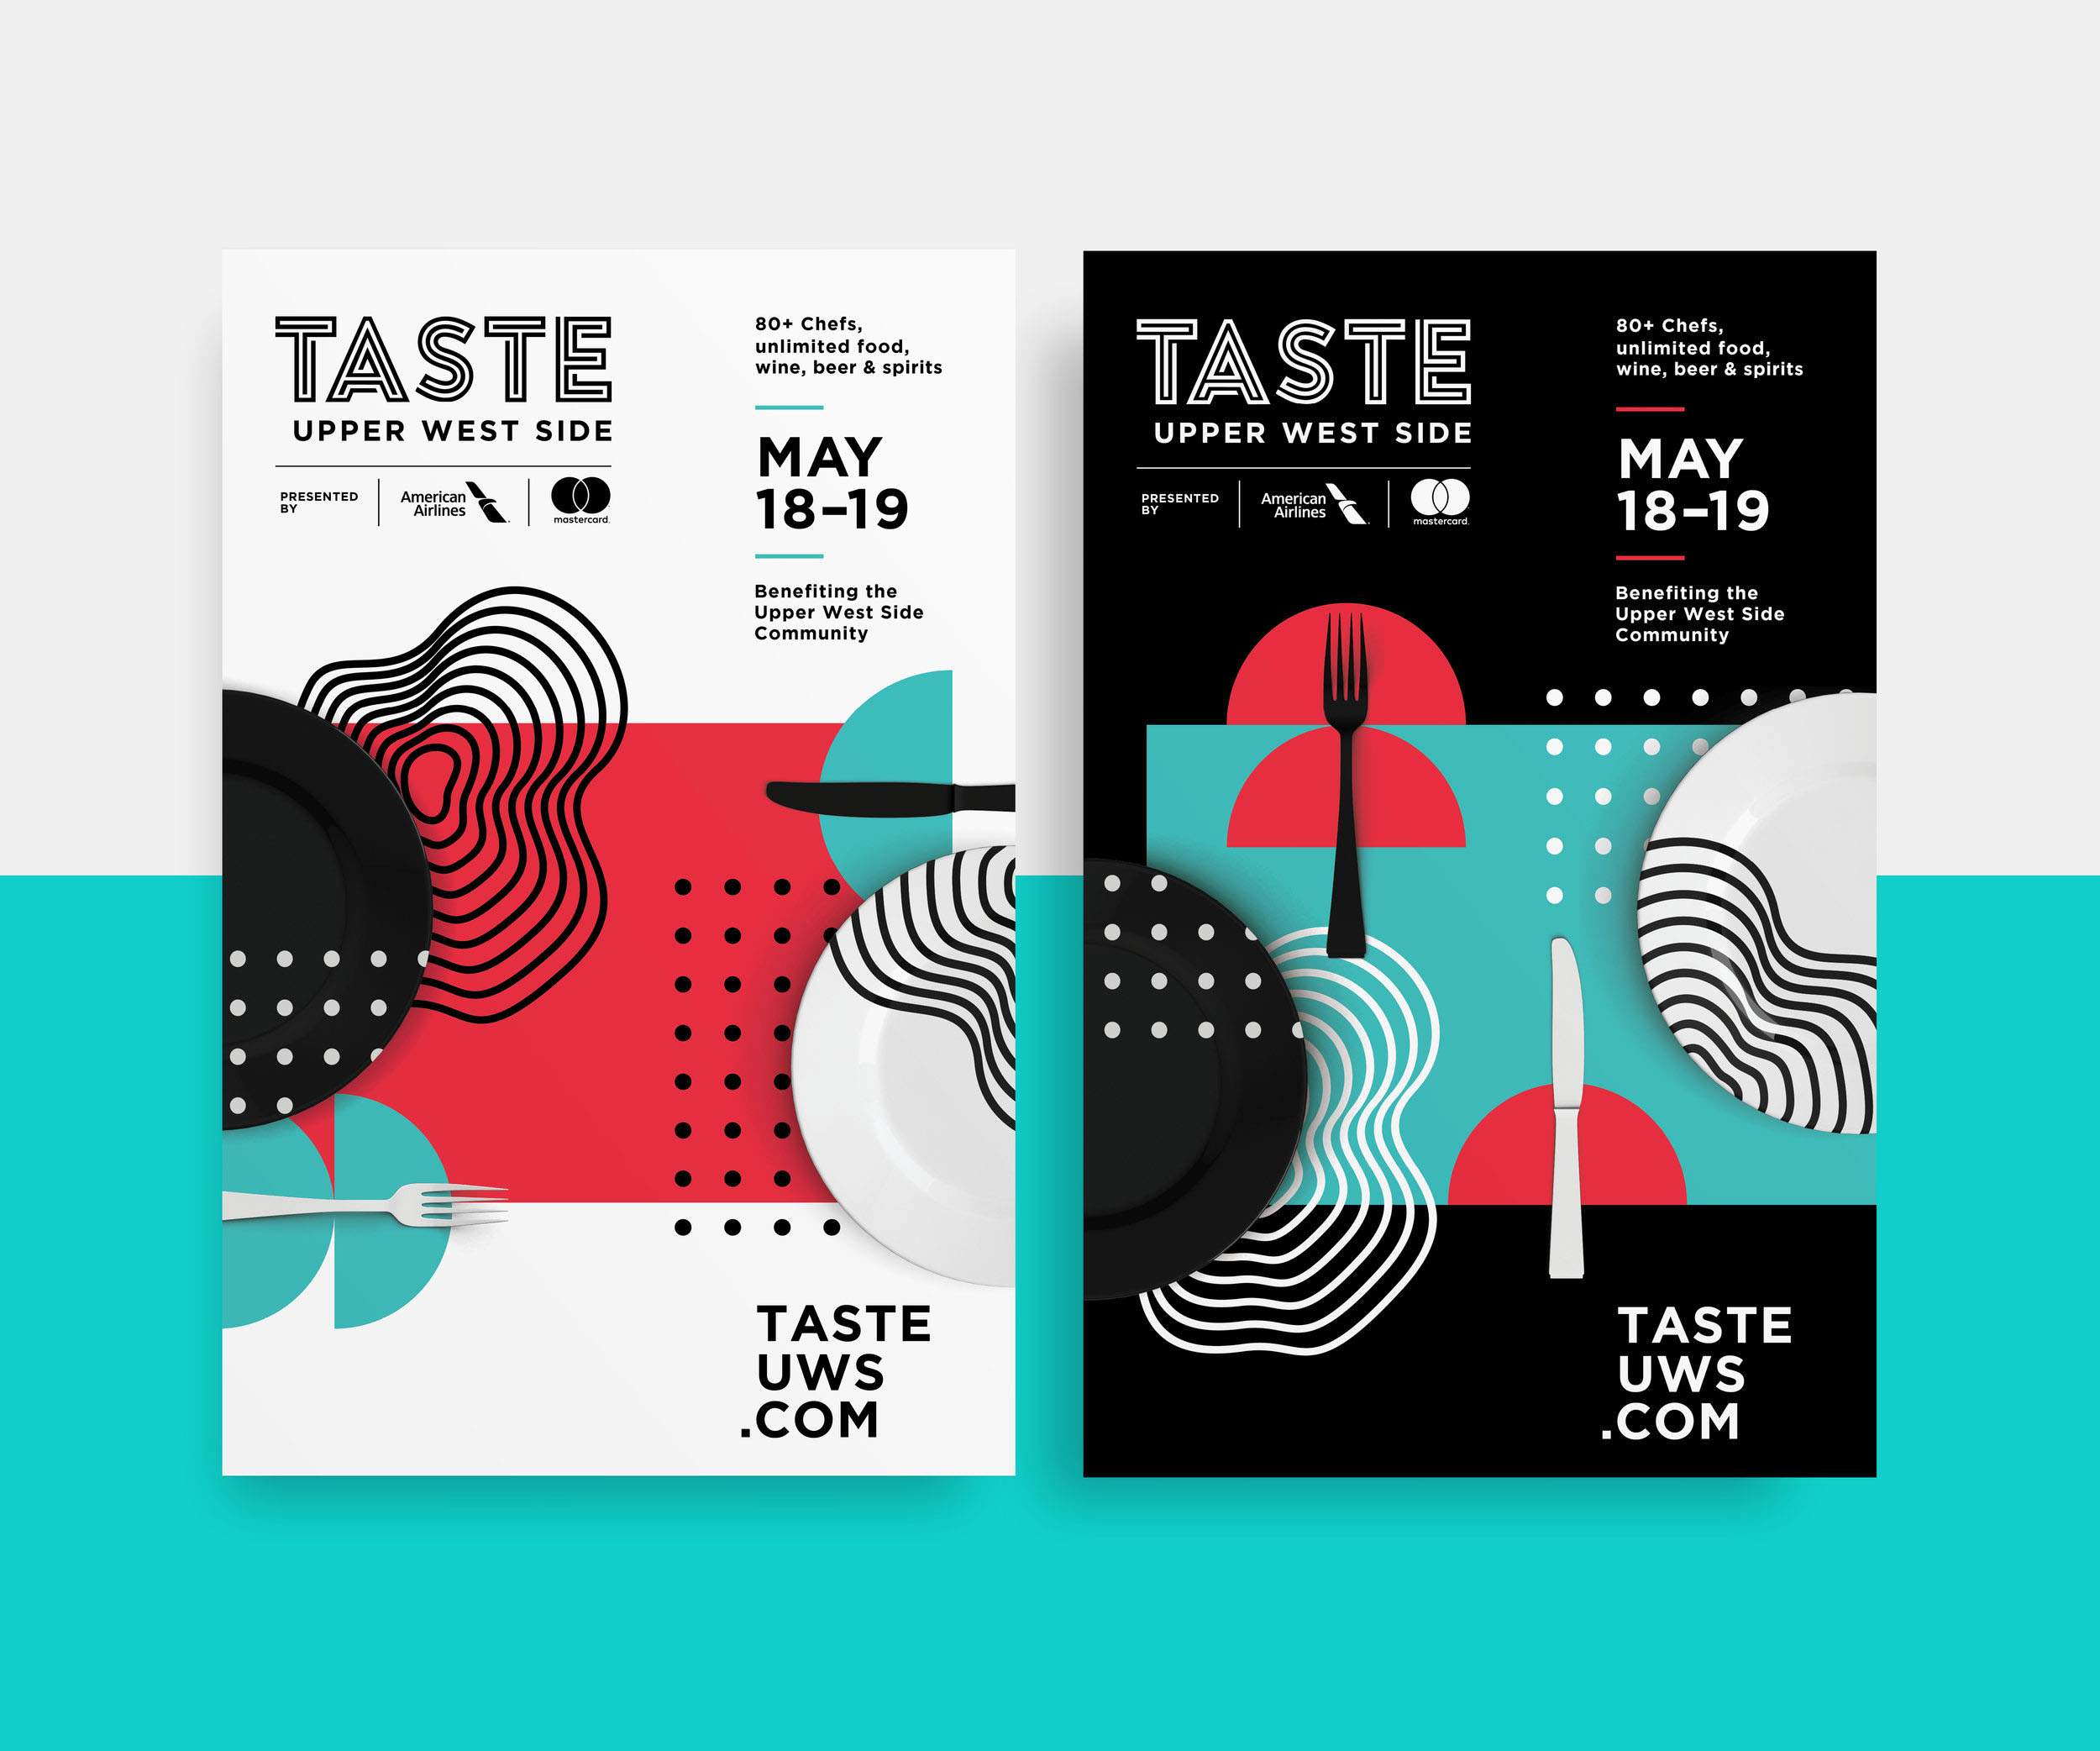 Design Trends: The 8 Biggest Graphic Design Trends That Will Dominate